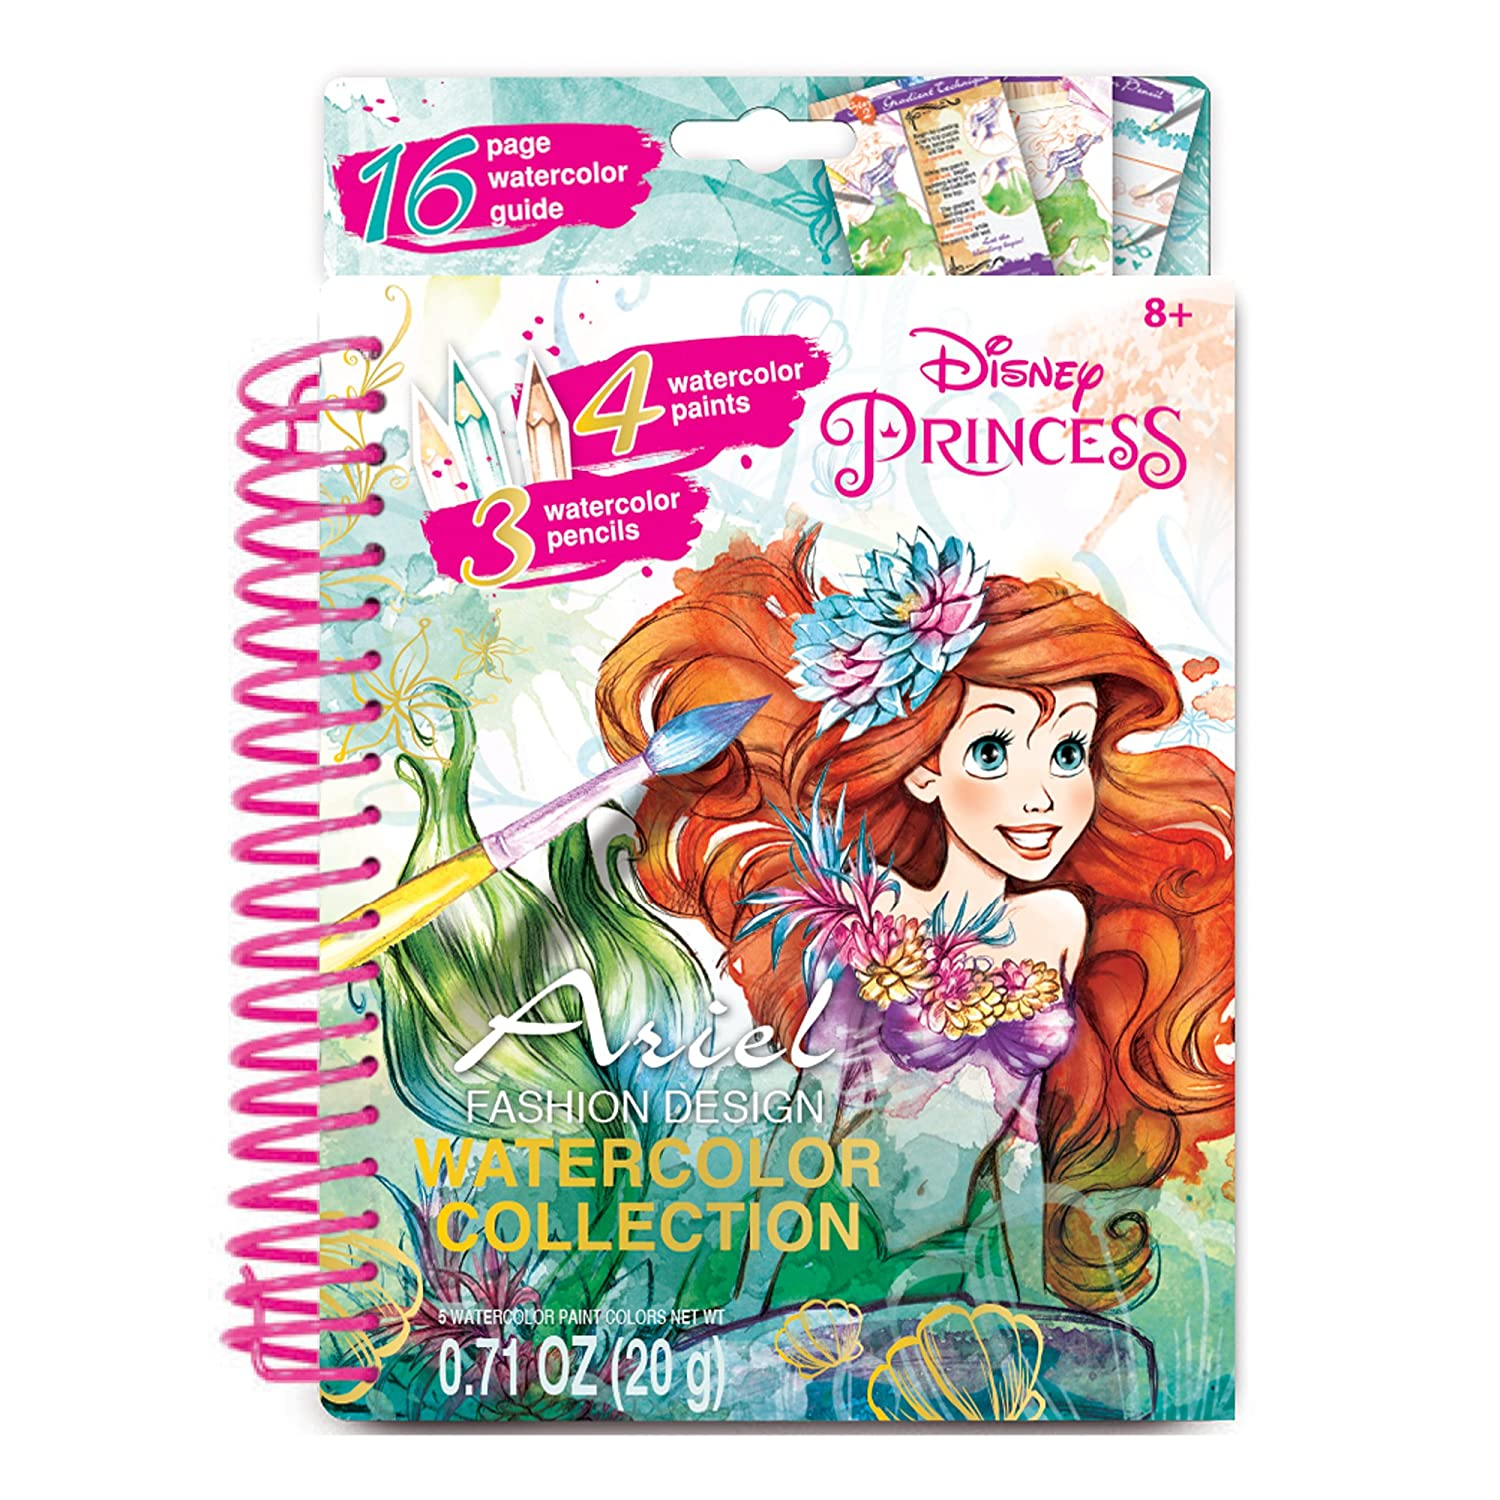 Make It Real – Disney Ariel Watercolor Small. Disney Inspired Coloring Book for Girls. Includes Ariel Watercolor Sketchbook, Paintbrushes, Watercolor Paints, Stencils, Stickers, and Design Guide 4203